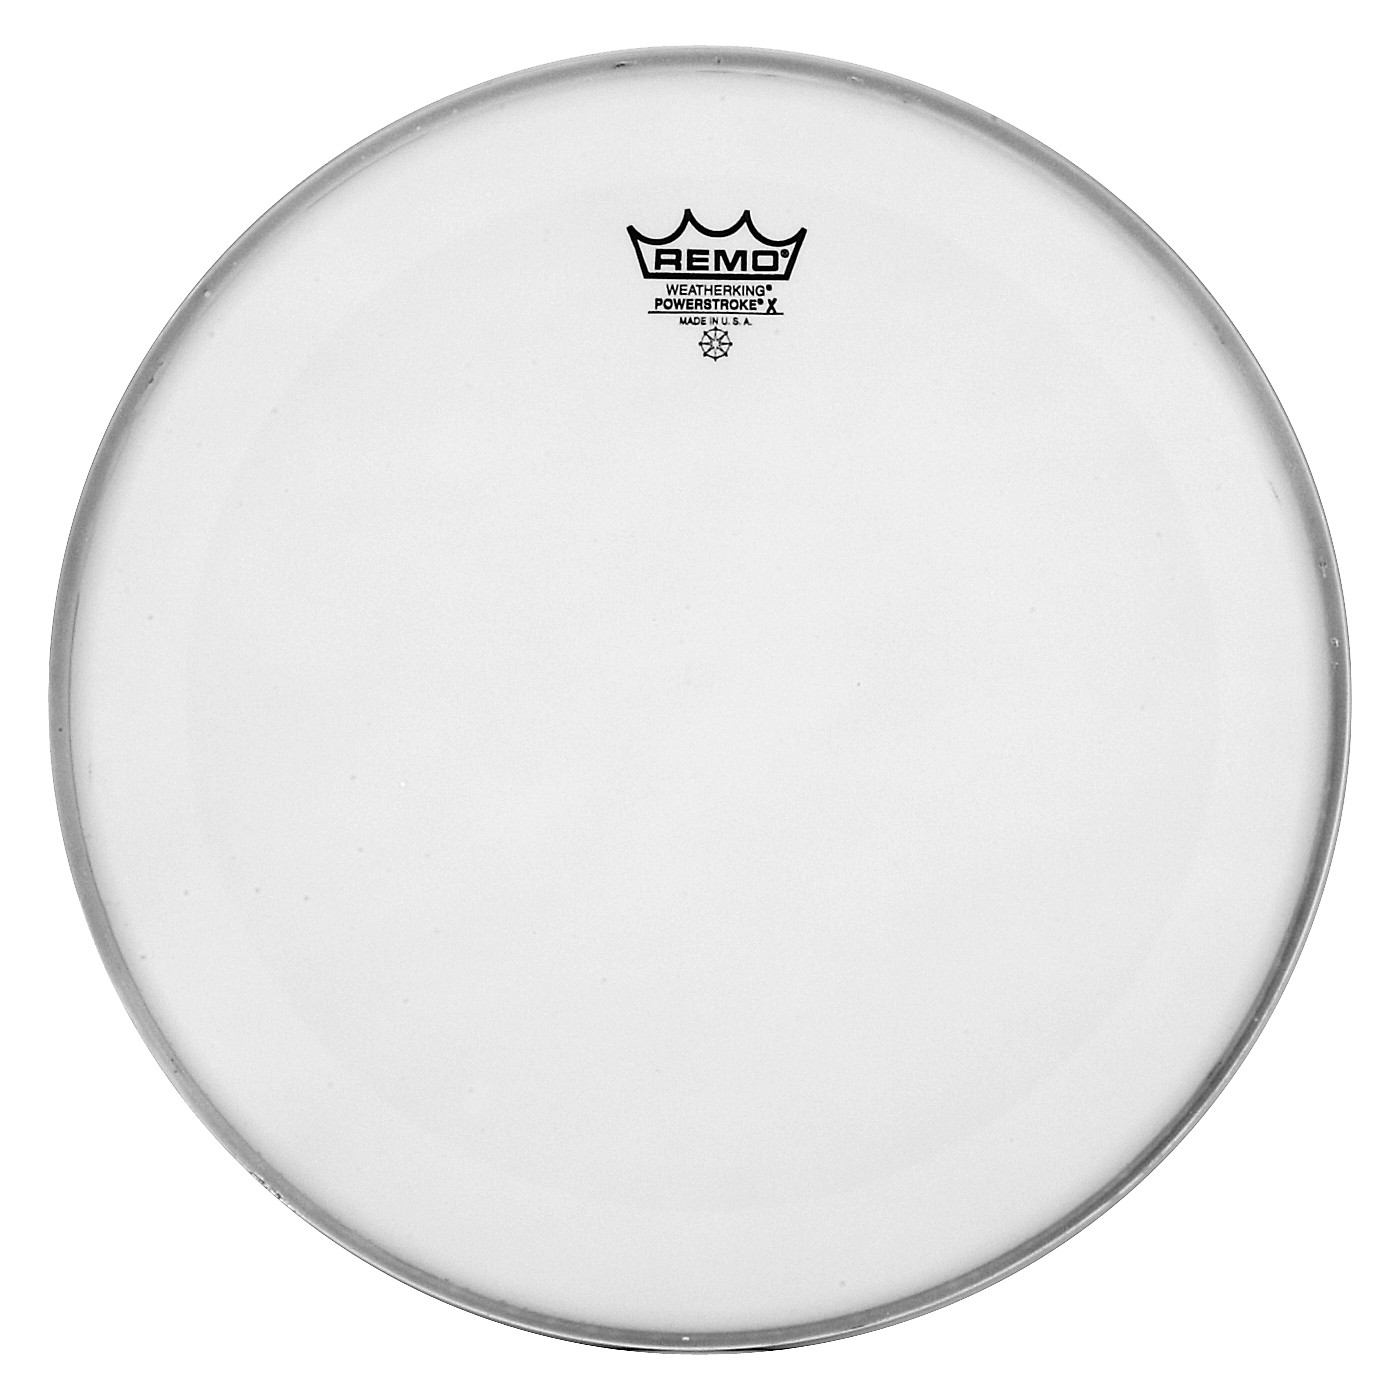 Remo Powerstroke X Coated Drumhead thumbnail